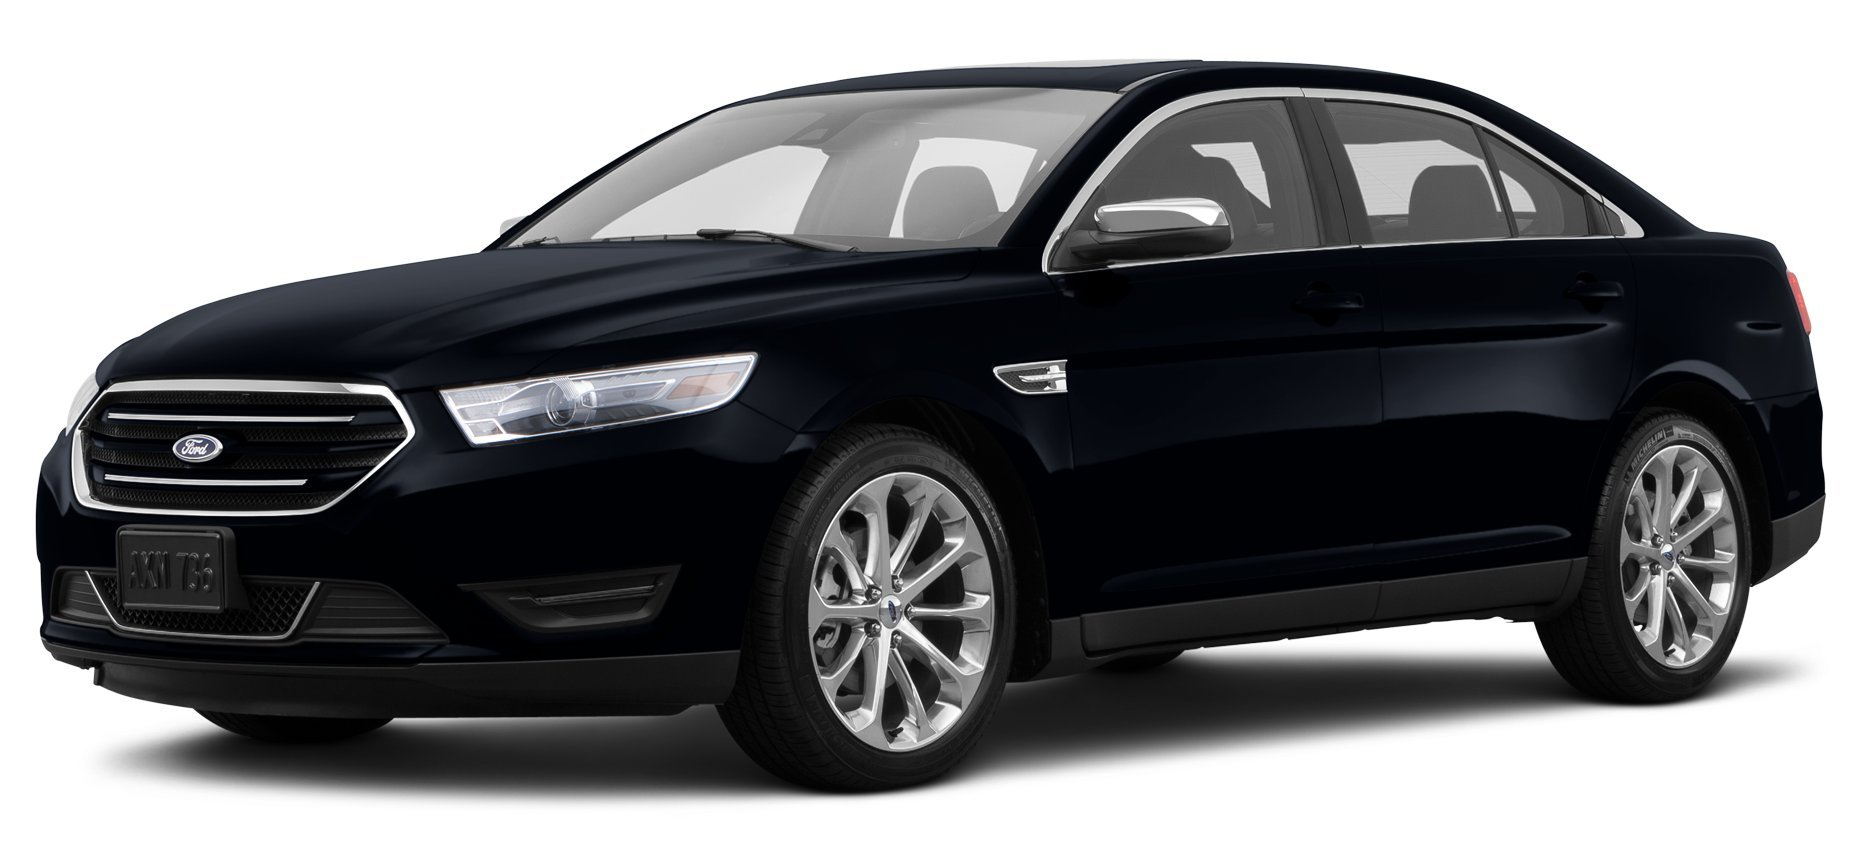 2014 ford taurus reviews images and specs vehicles. Black Bedroom Furniture Sets. Home Design Ideas